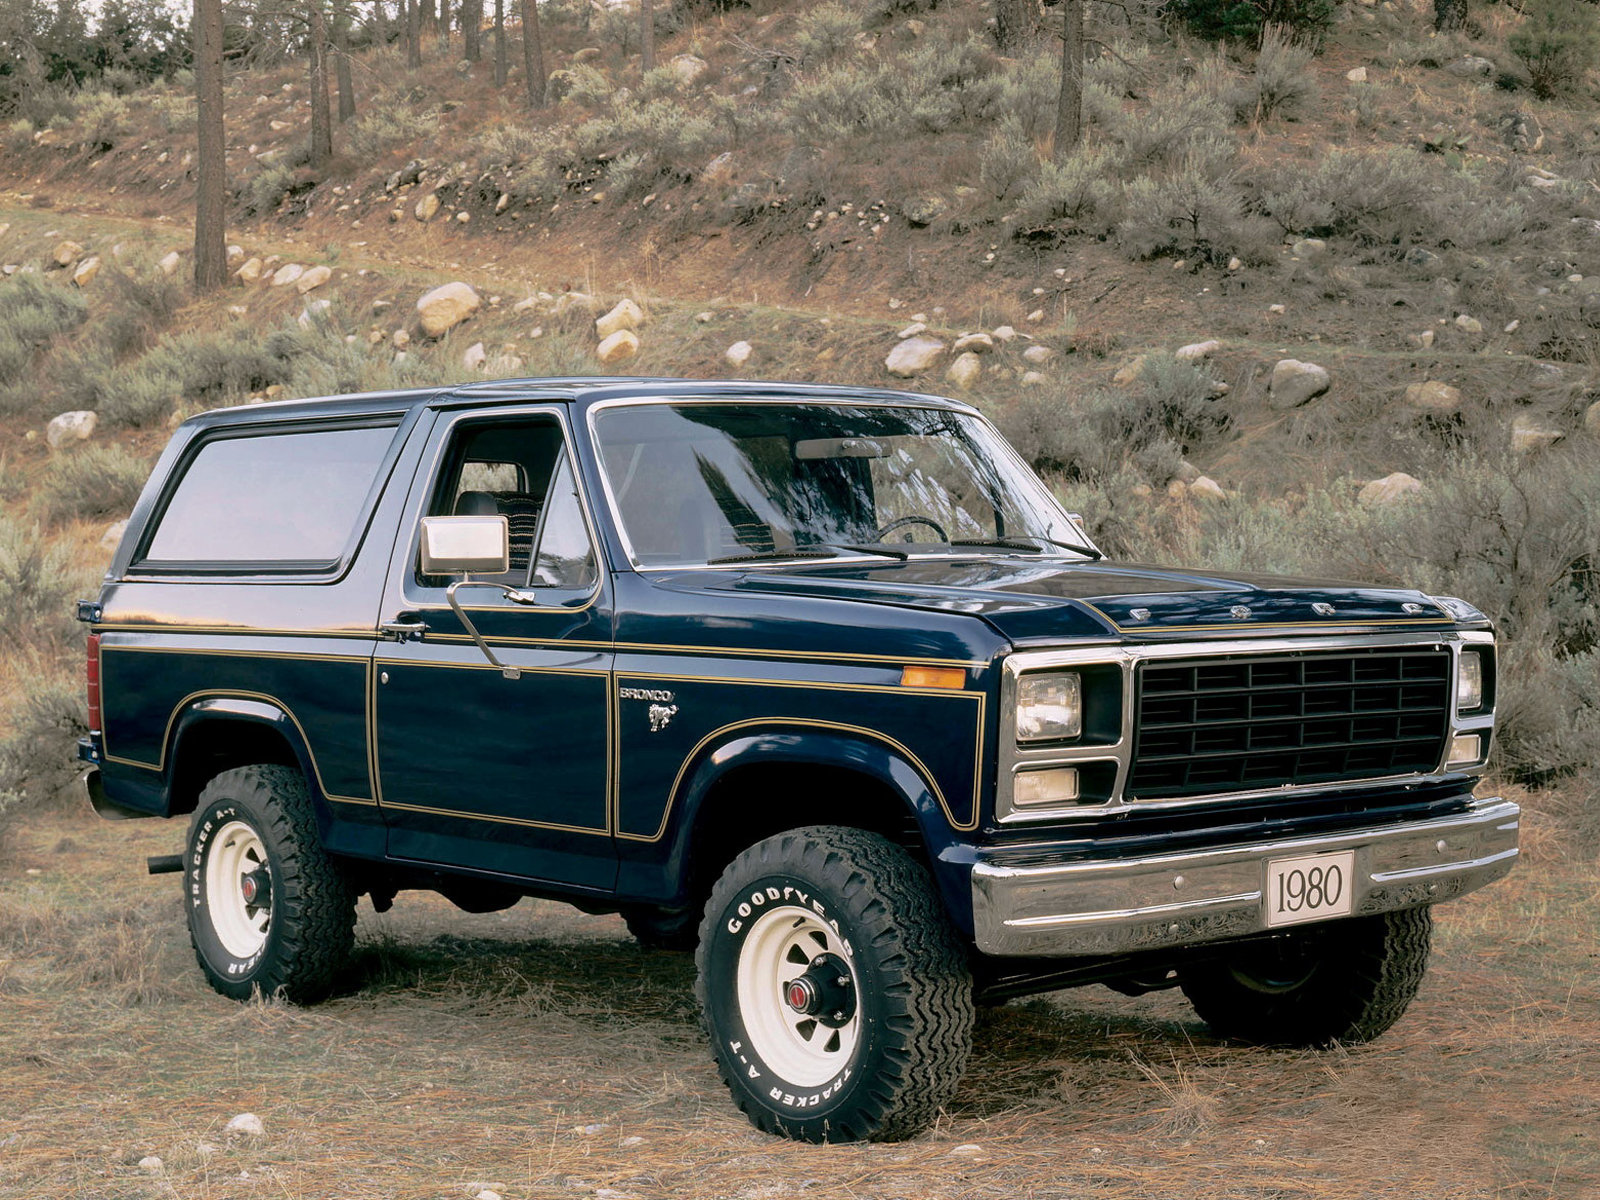 Ford_Bronco_SUV 3 door_1980